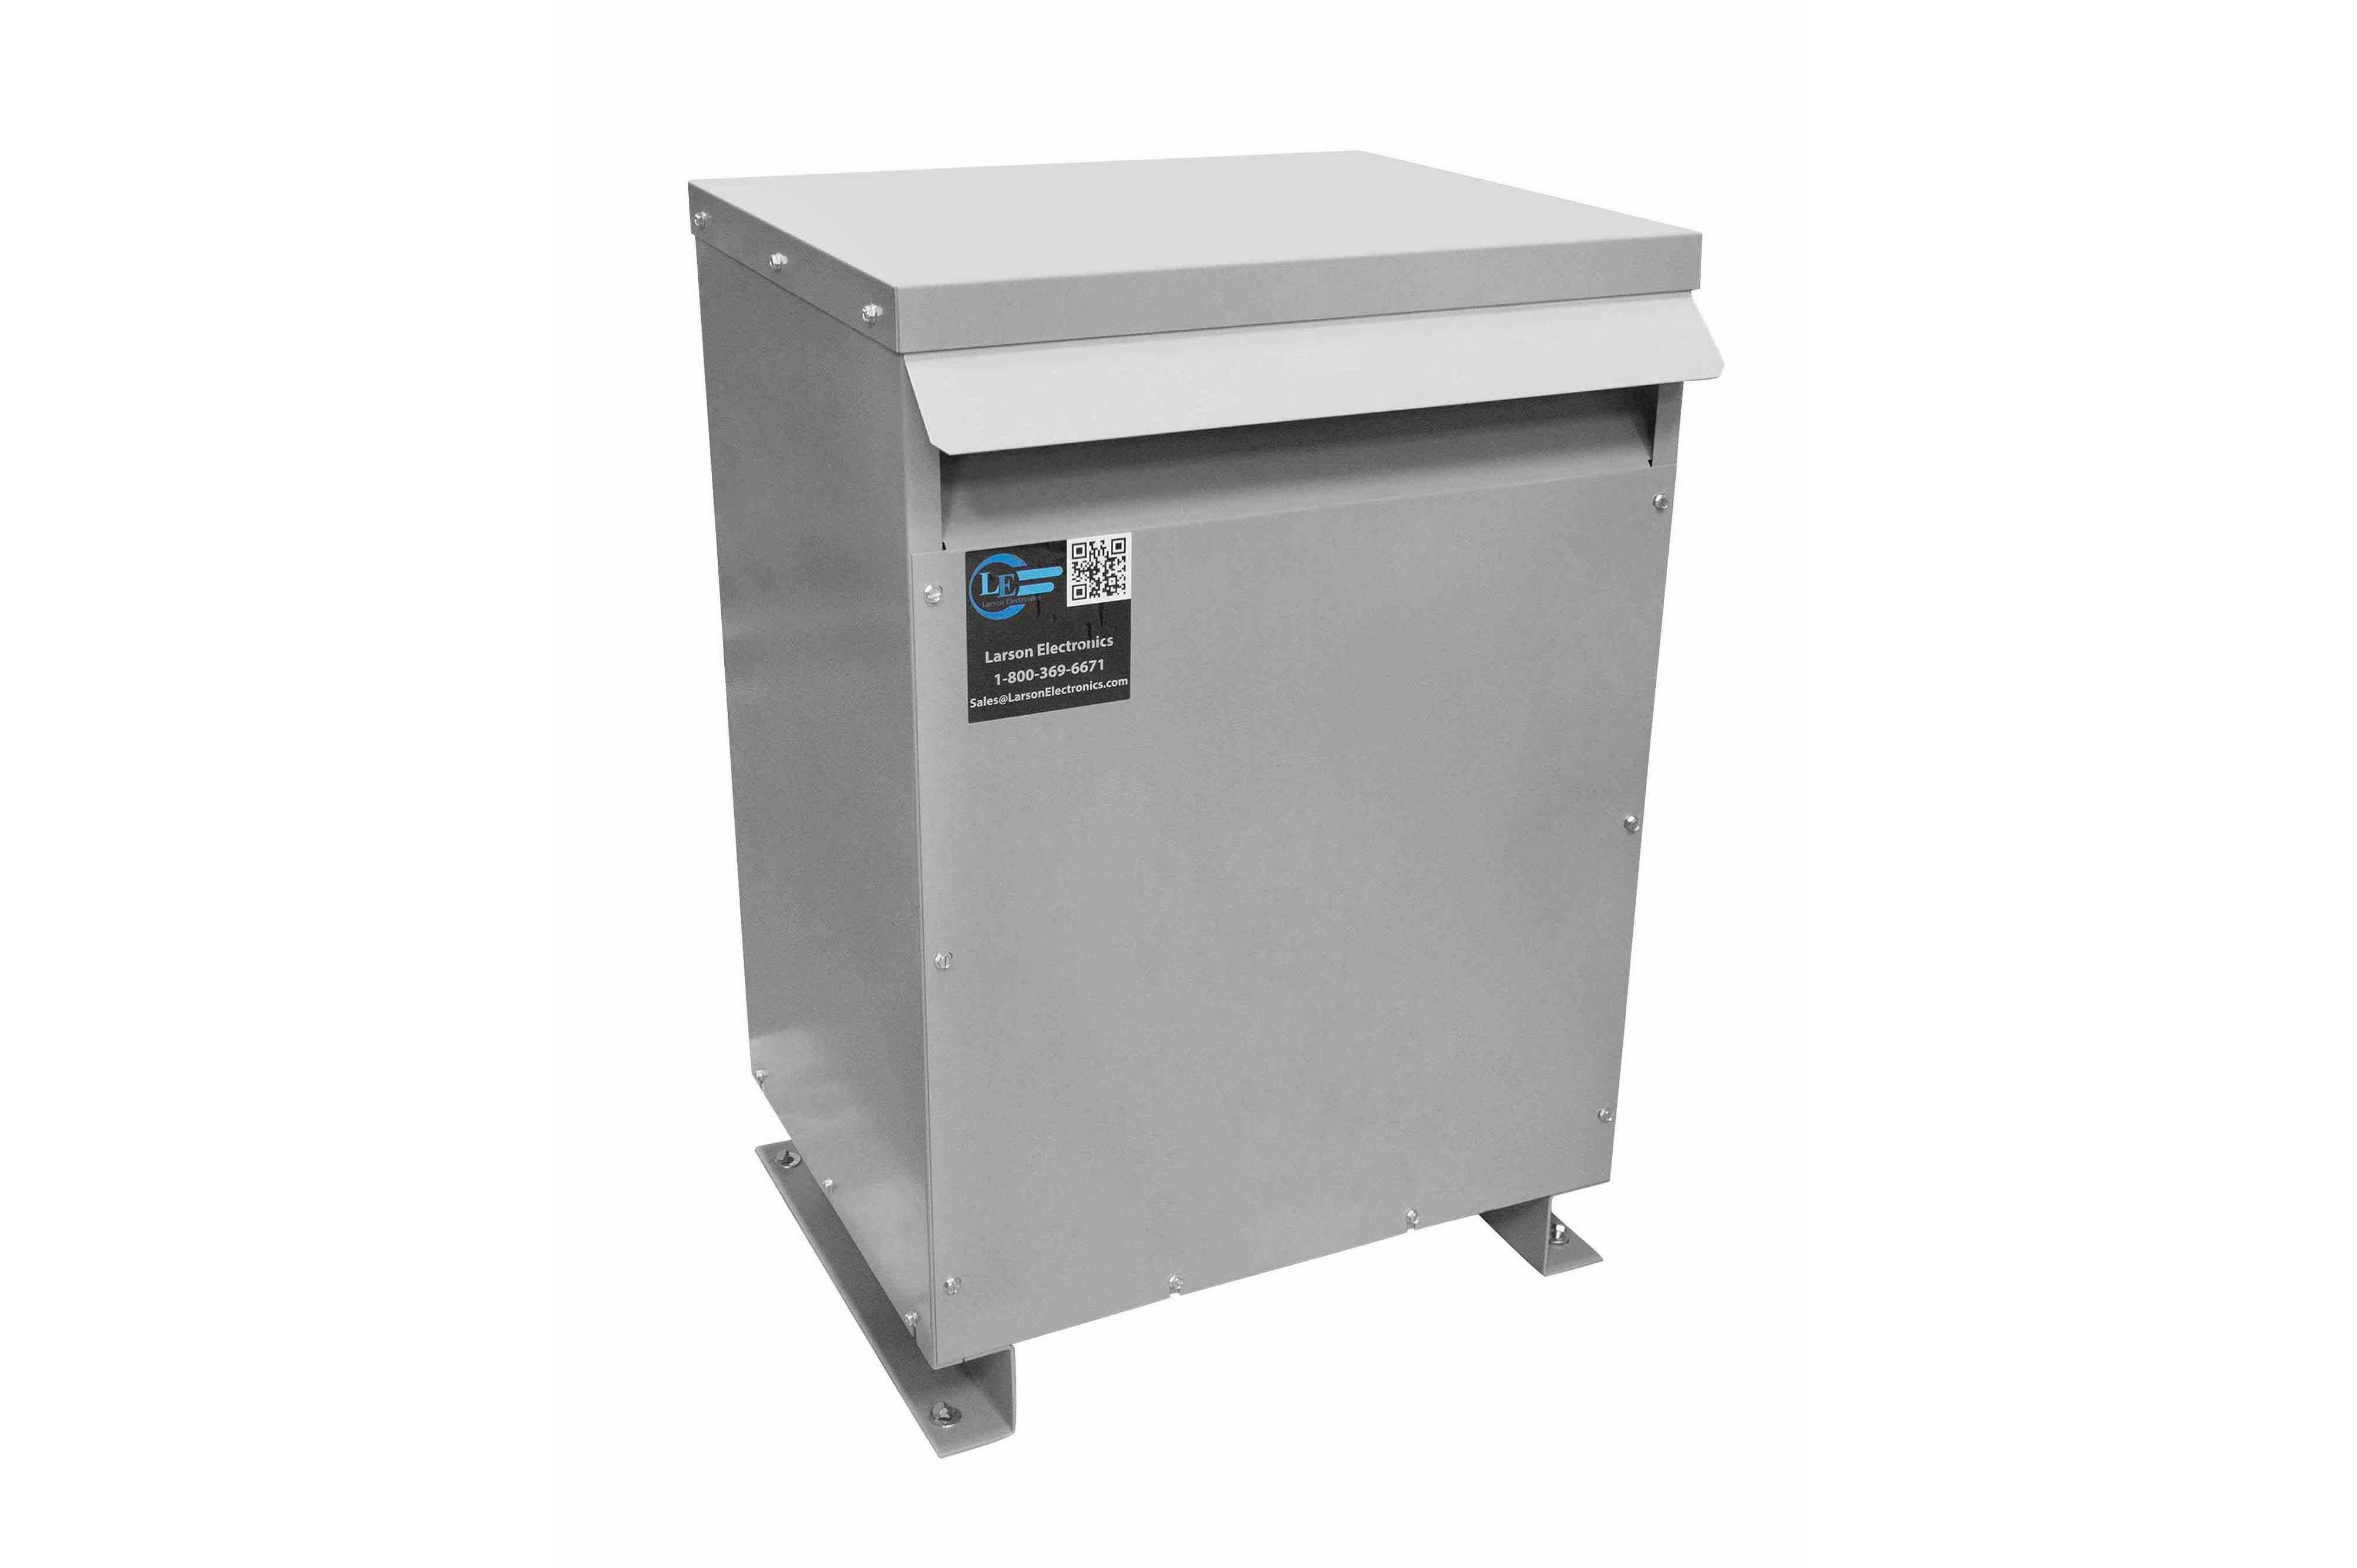 30 kVA 3PH DOE Transformer, 460V Delta Primary, 415Y/240 Wye-N Secondary, N3R, Ventilated, 60 Hz